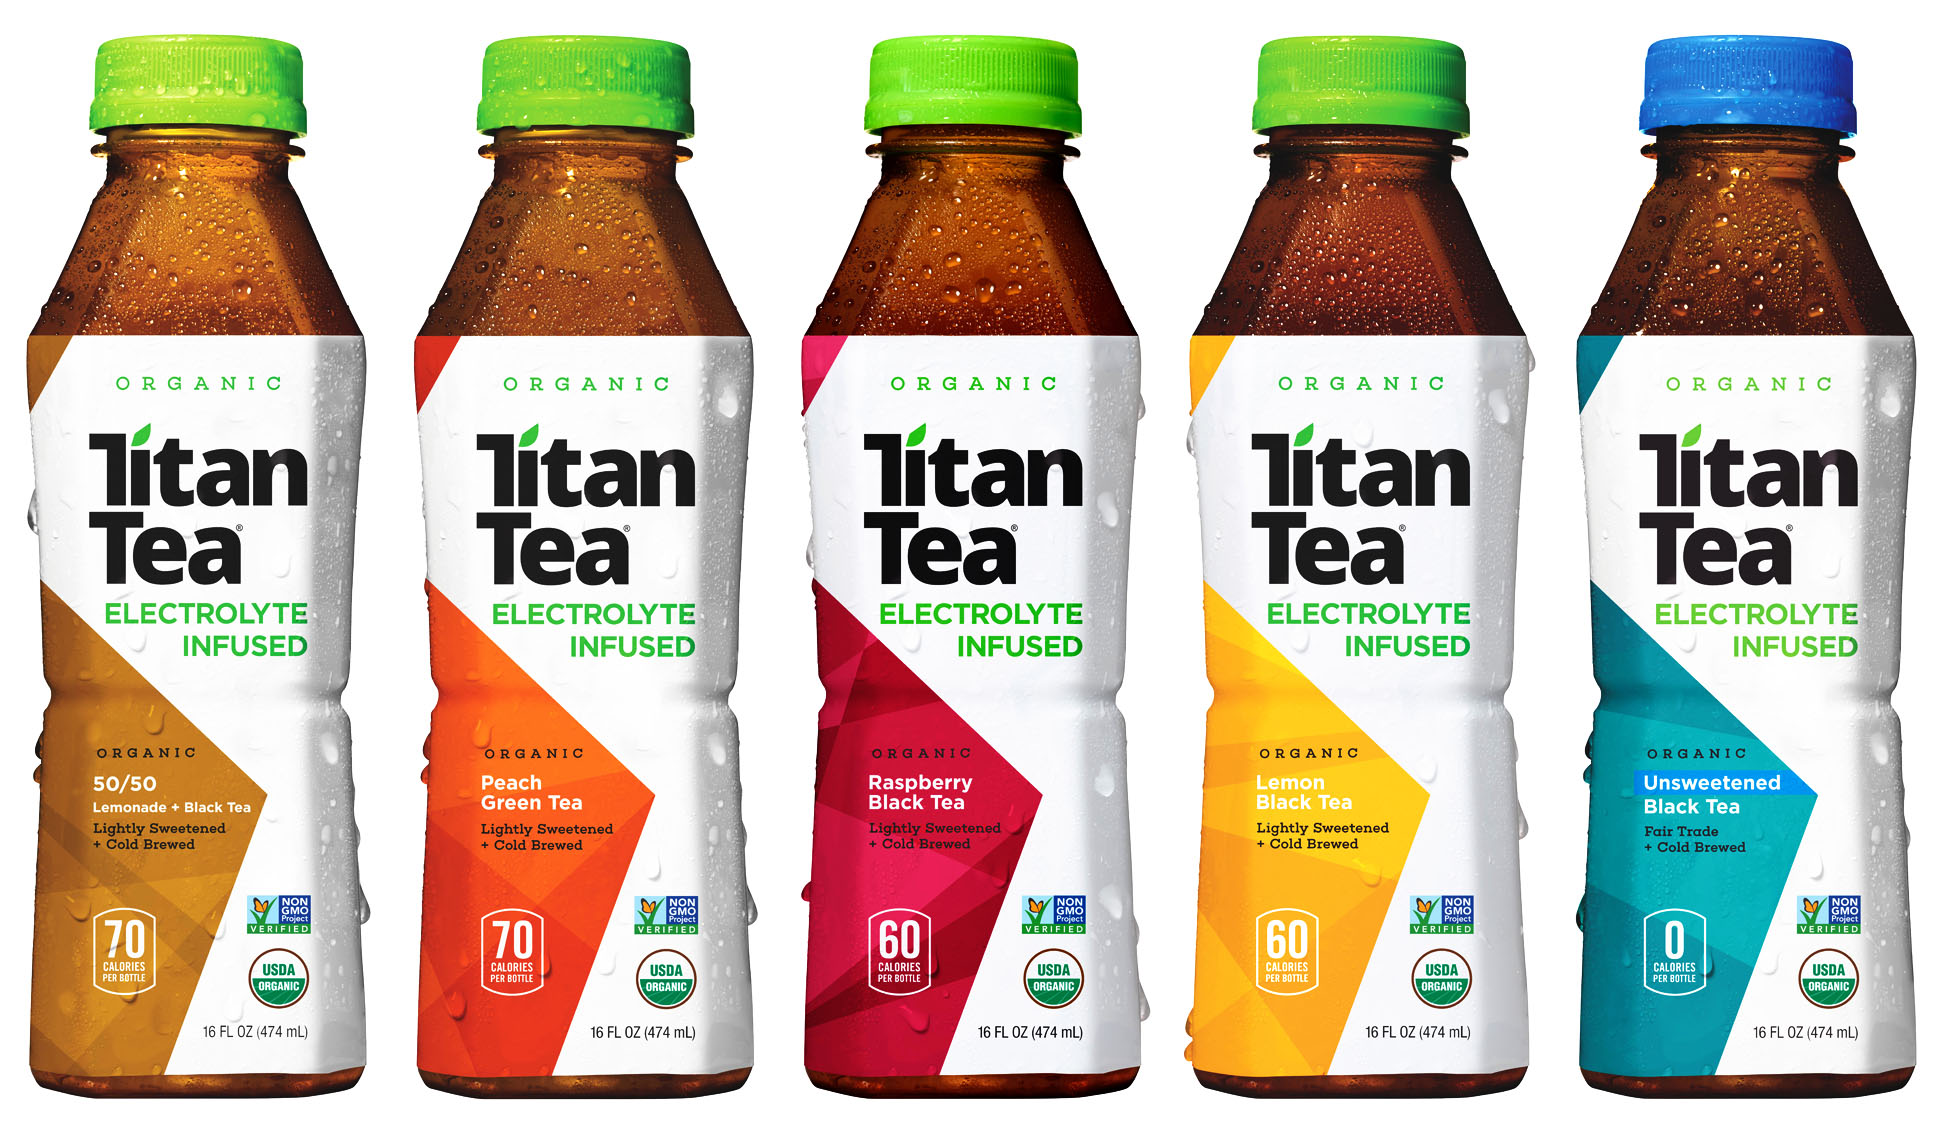 titian tea bottle product photography on white background